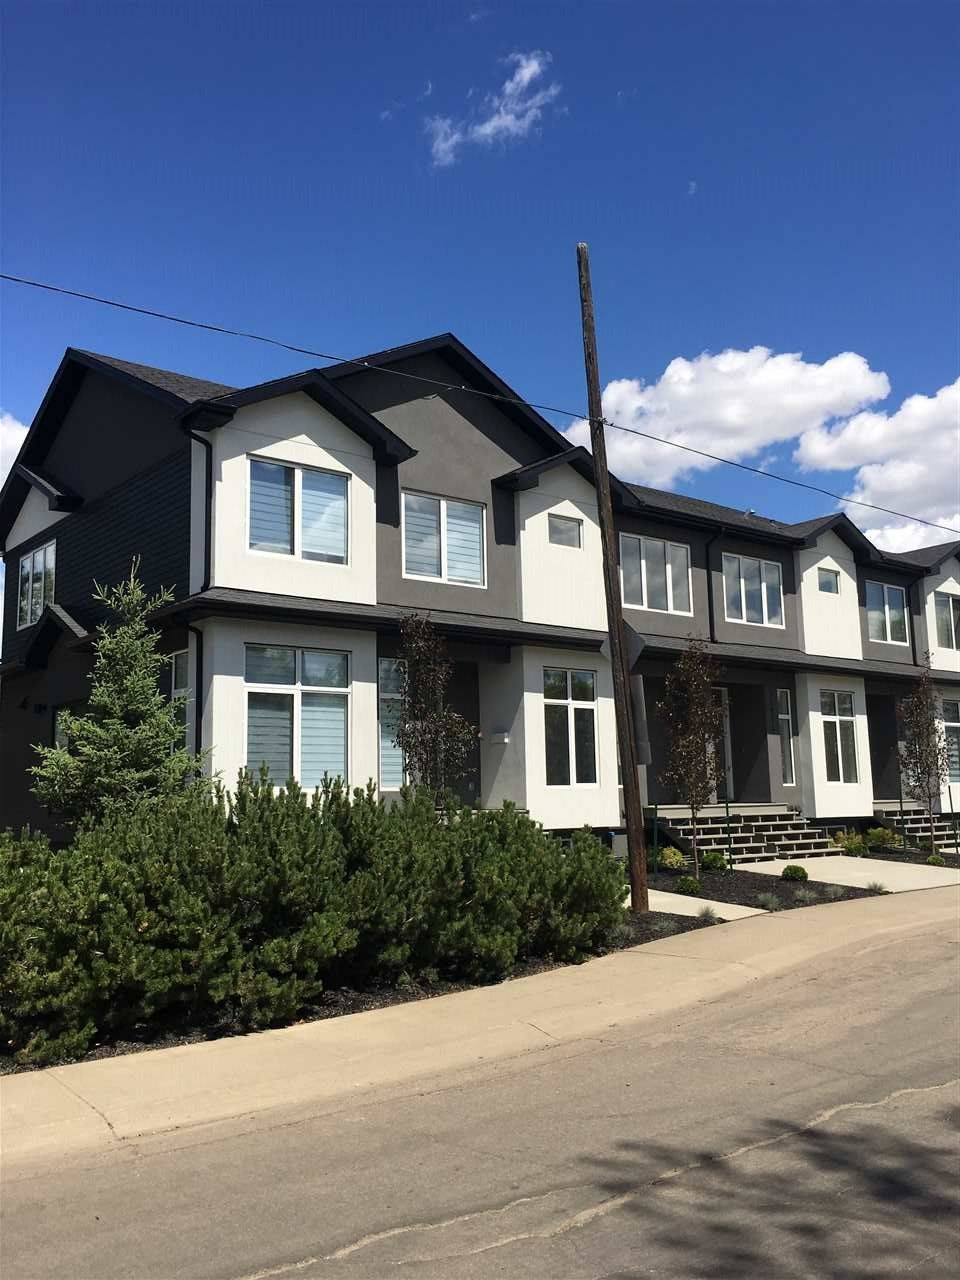 Main Photo: 14914 108 Avenue in Edmonton: Zone 21 Townhouse for sale : MLS®# E4139615